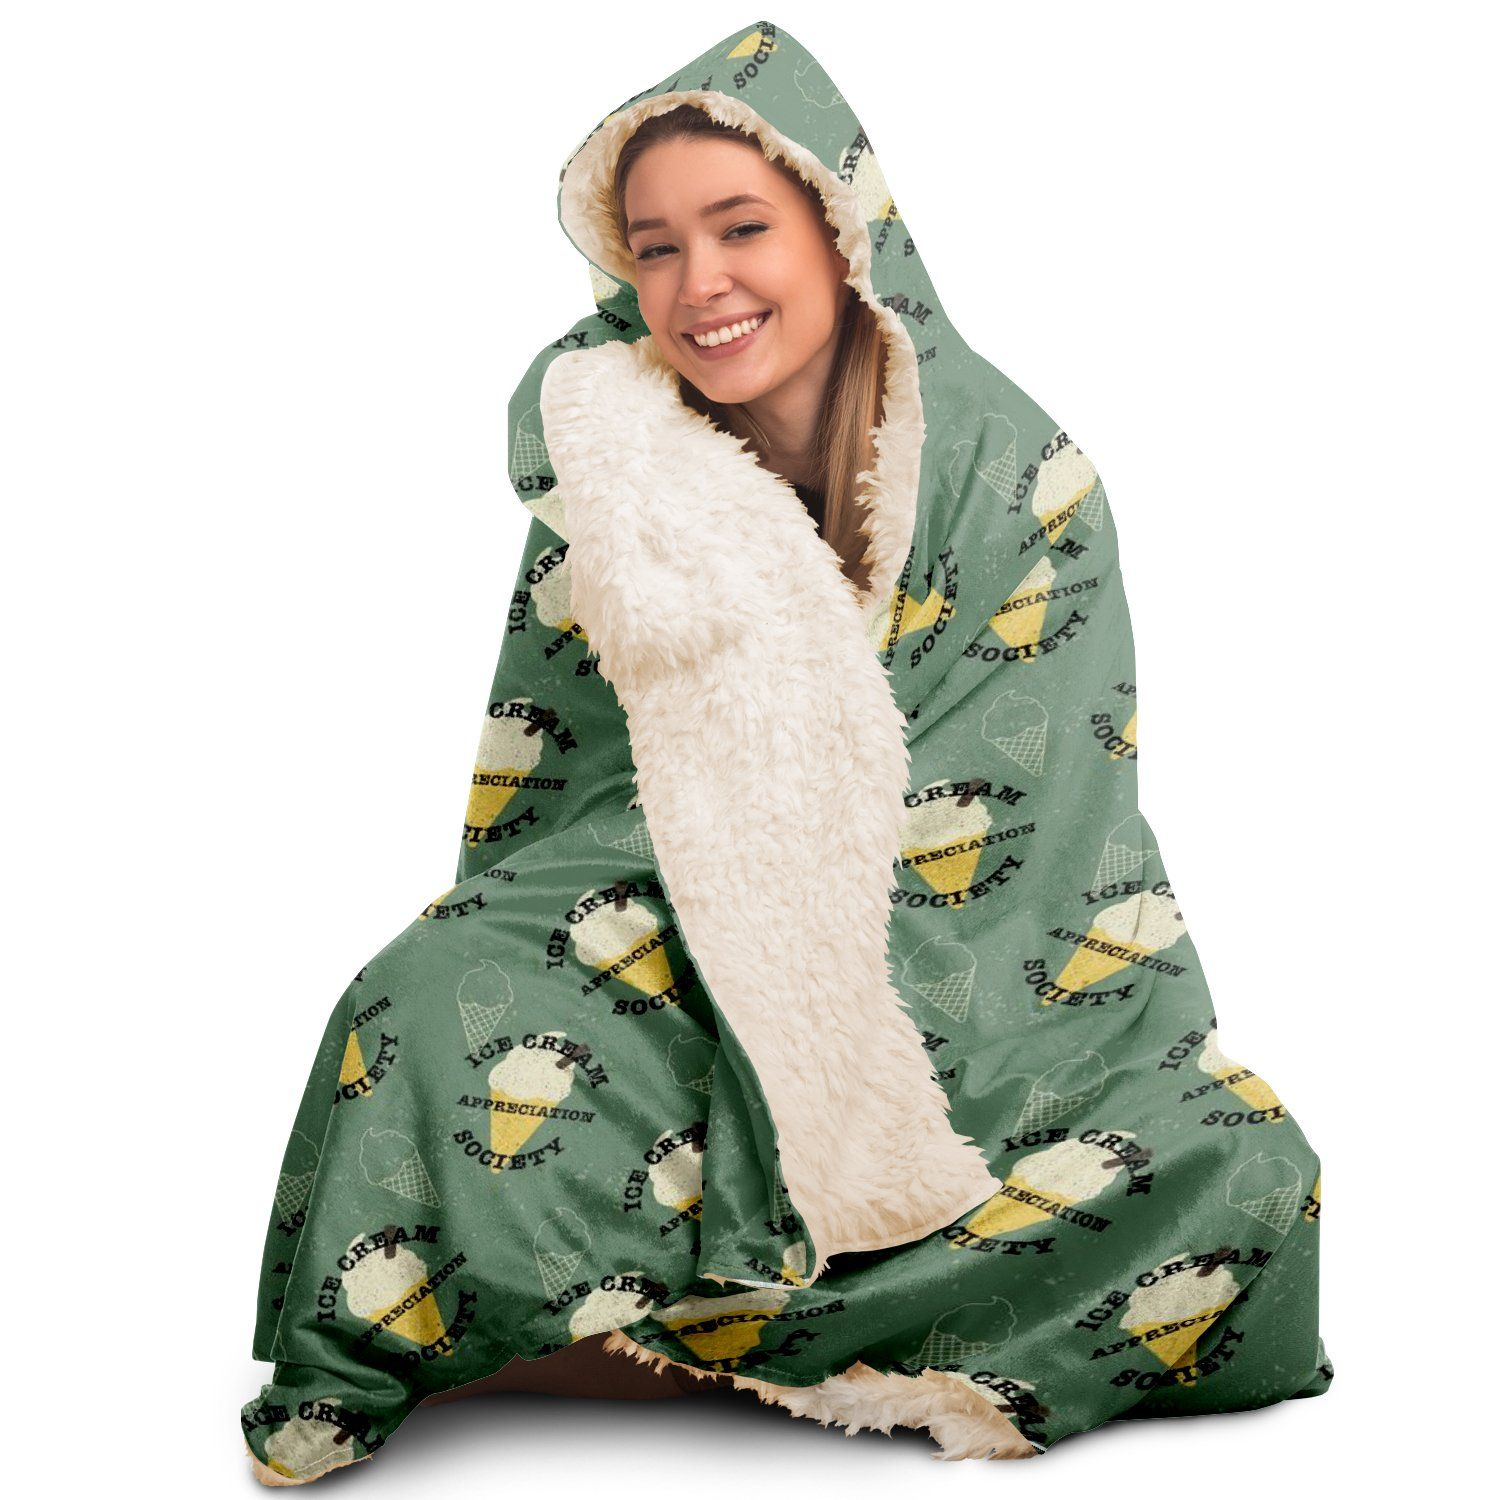 Ice Cream Appreciation - Hooded Blanket - Green - Fair Dinkum Fashion